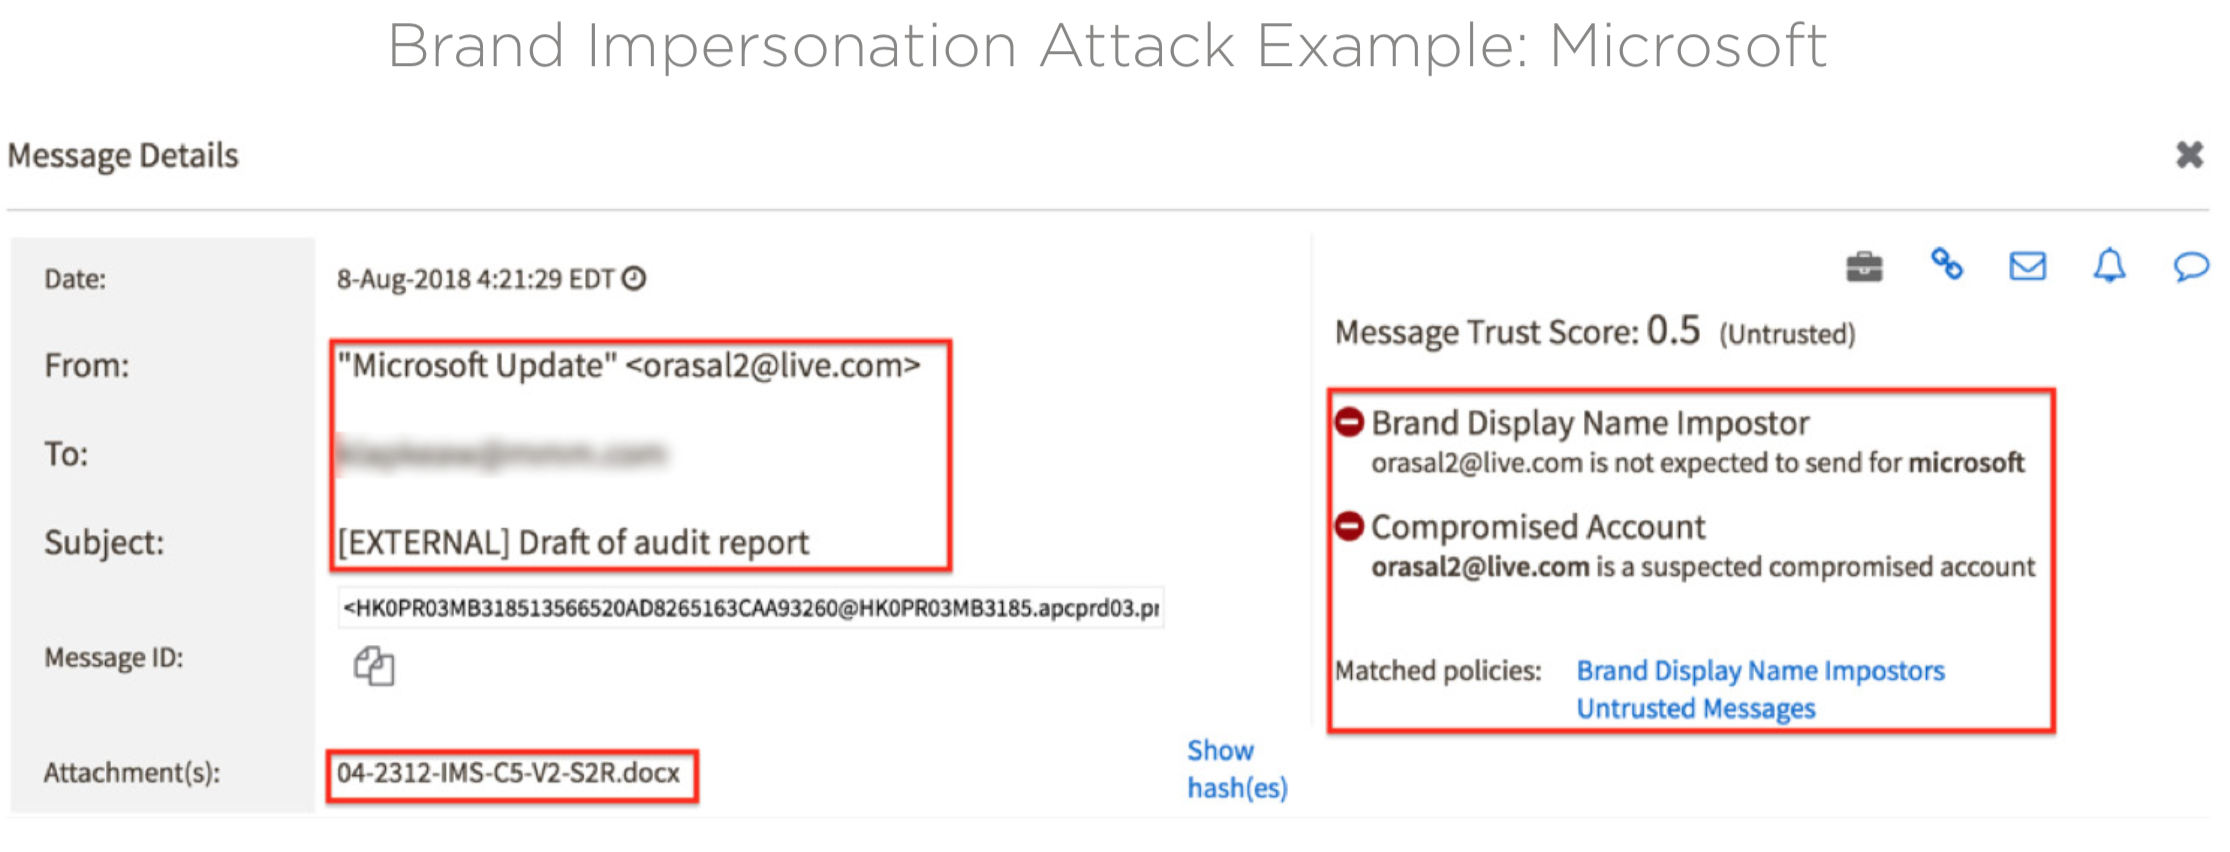 brand-impersonation-attack-microsoft-2019